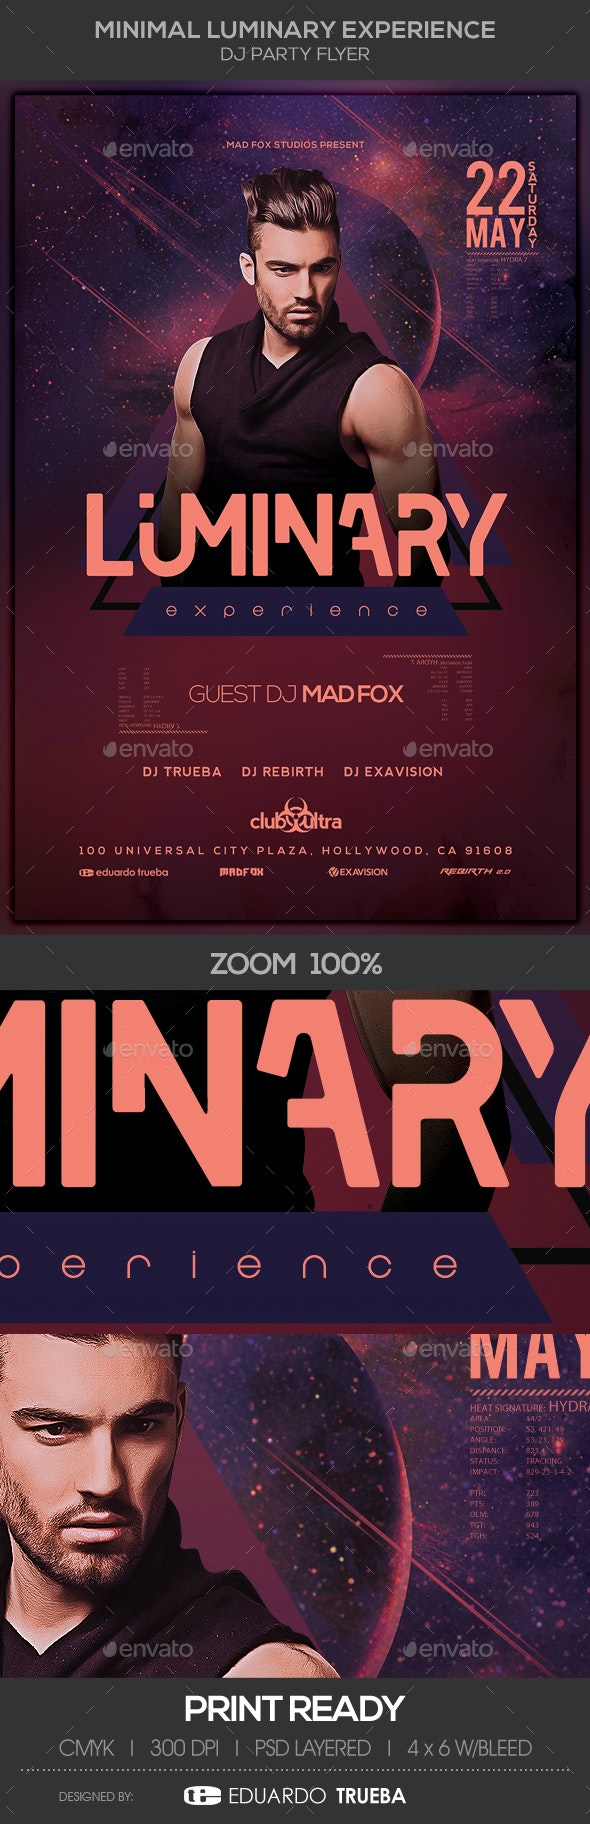 Minimal Luminary Experience Dj Party Flyer - Clubs & Parties Events